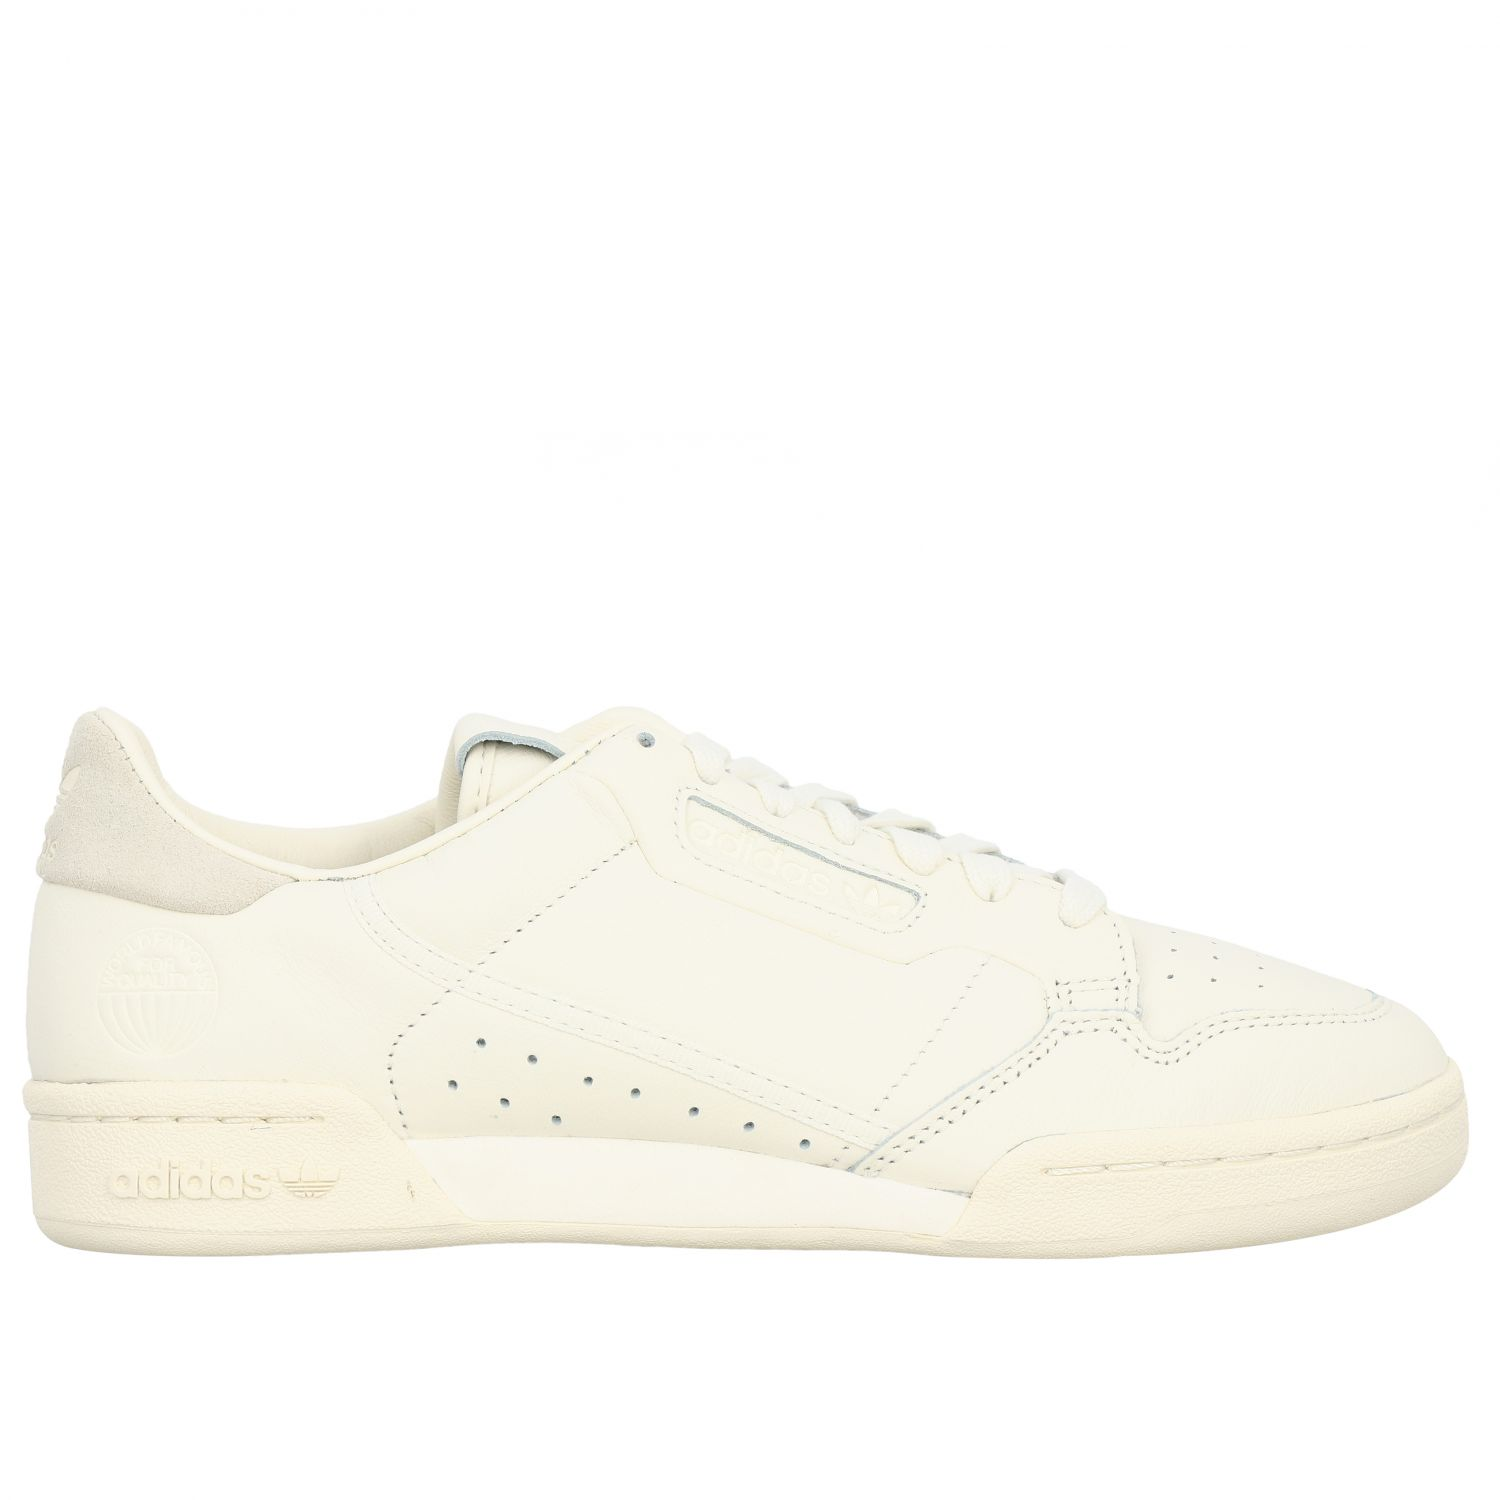 Sneakers Adidas Originals: Continental 80 Adidas Originals Sneakers aus Leder yellow cream 1